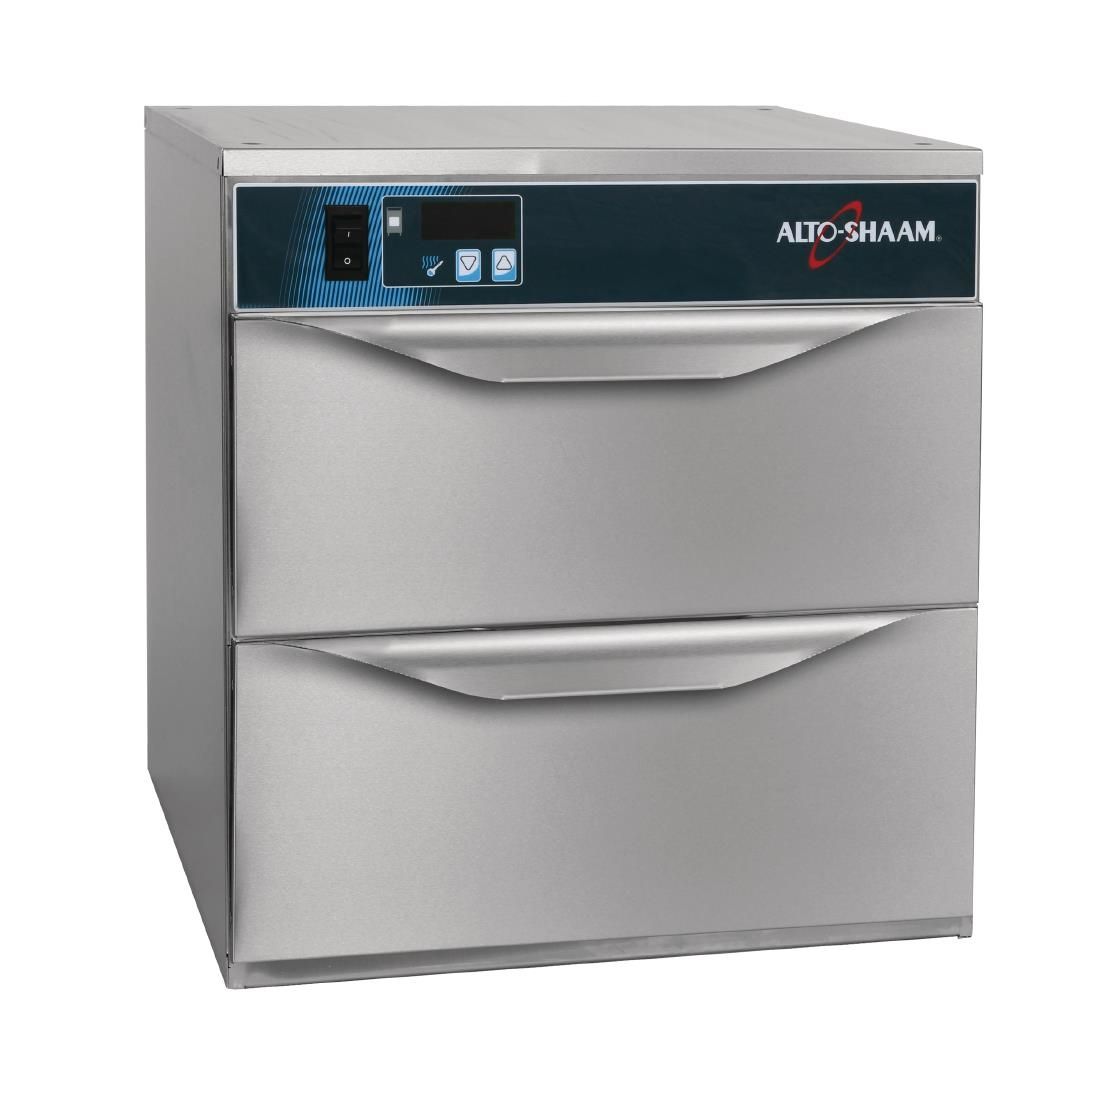 Image of Alto Shaam Two Drawer Warmers 500-2DN